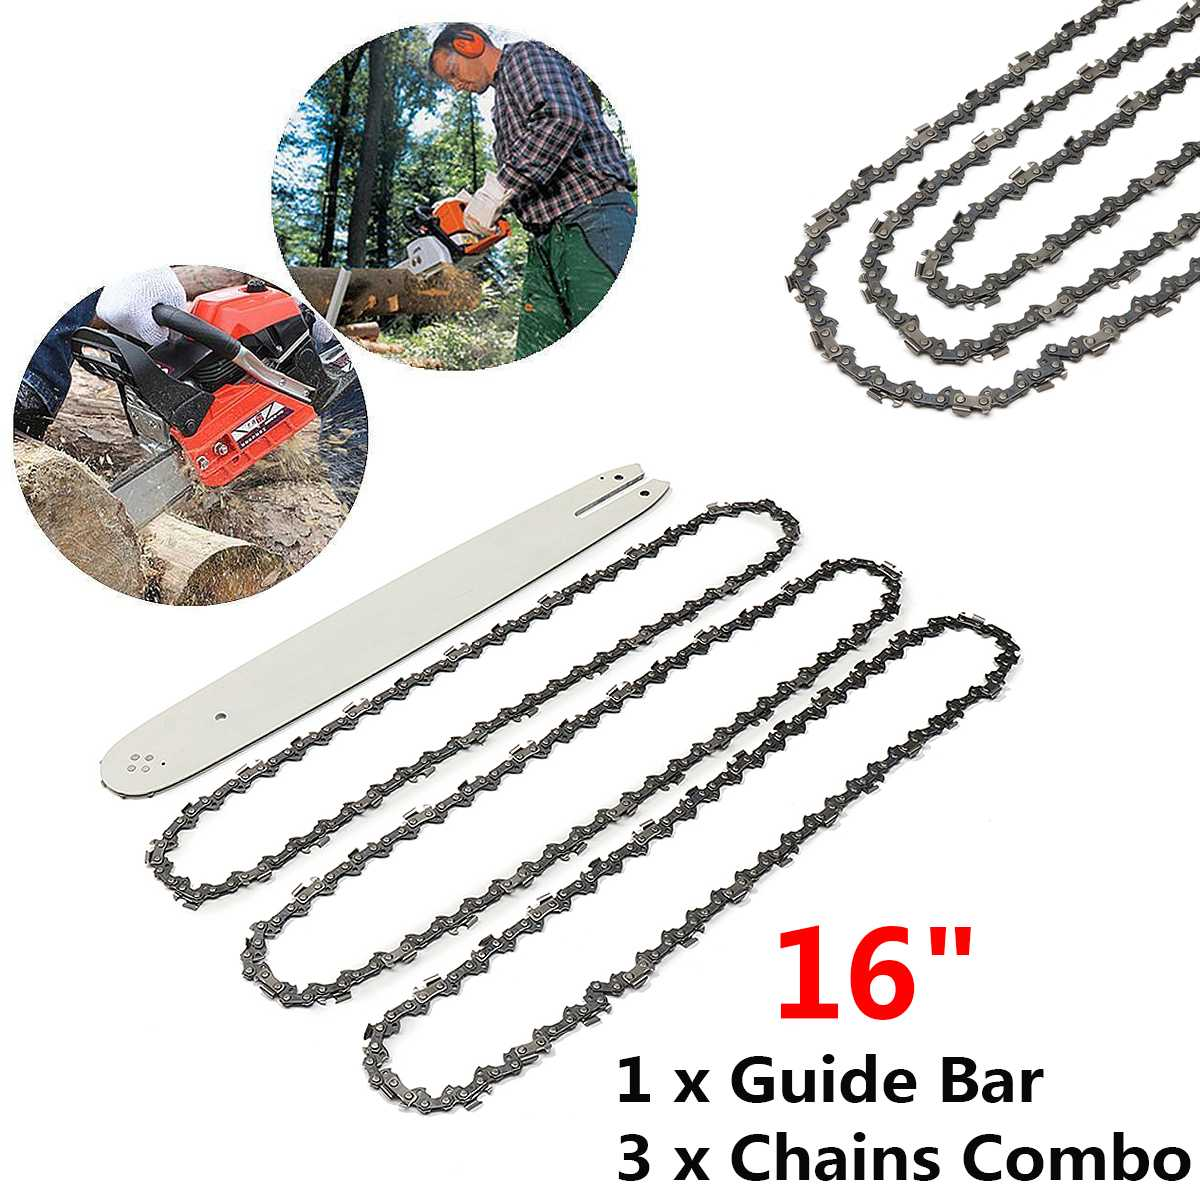 4Pcs Set 16 Inch 3 8LP 050inch Chain Saw Guide Bar With 3pcs Chains For STIHL 009 012 021 E180 MS180 MS190 MS250 HT70